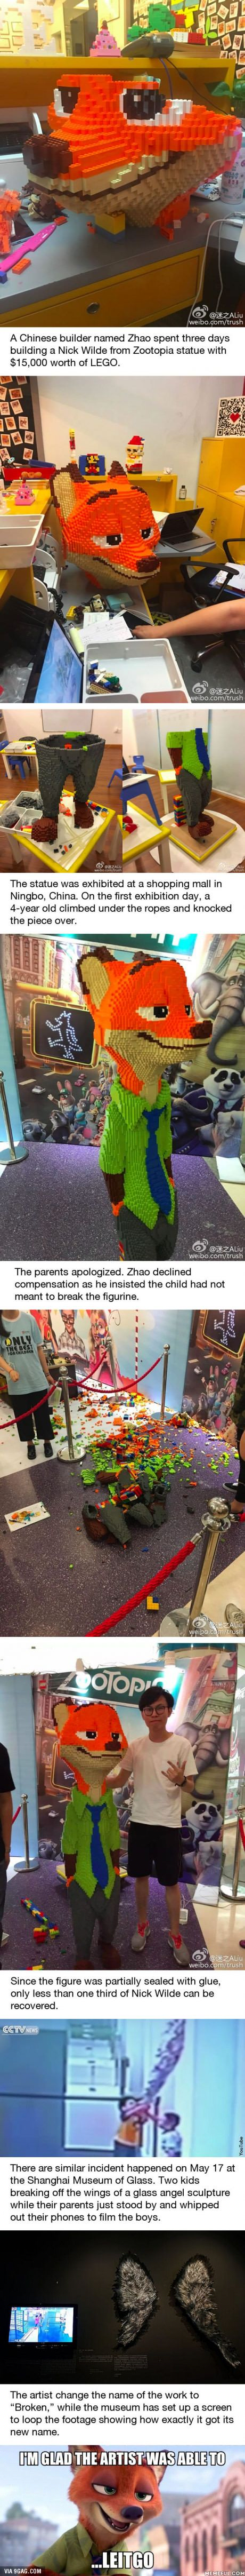 Dude Spent 3 Days Building Zootopia Lego Figurine, Kid Smashed It In Seconds